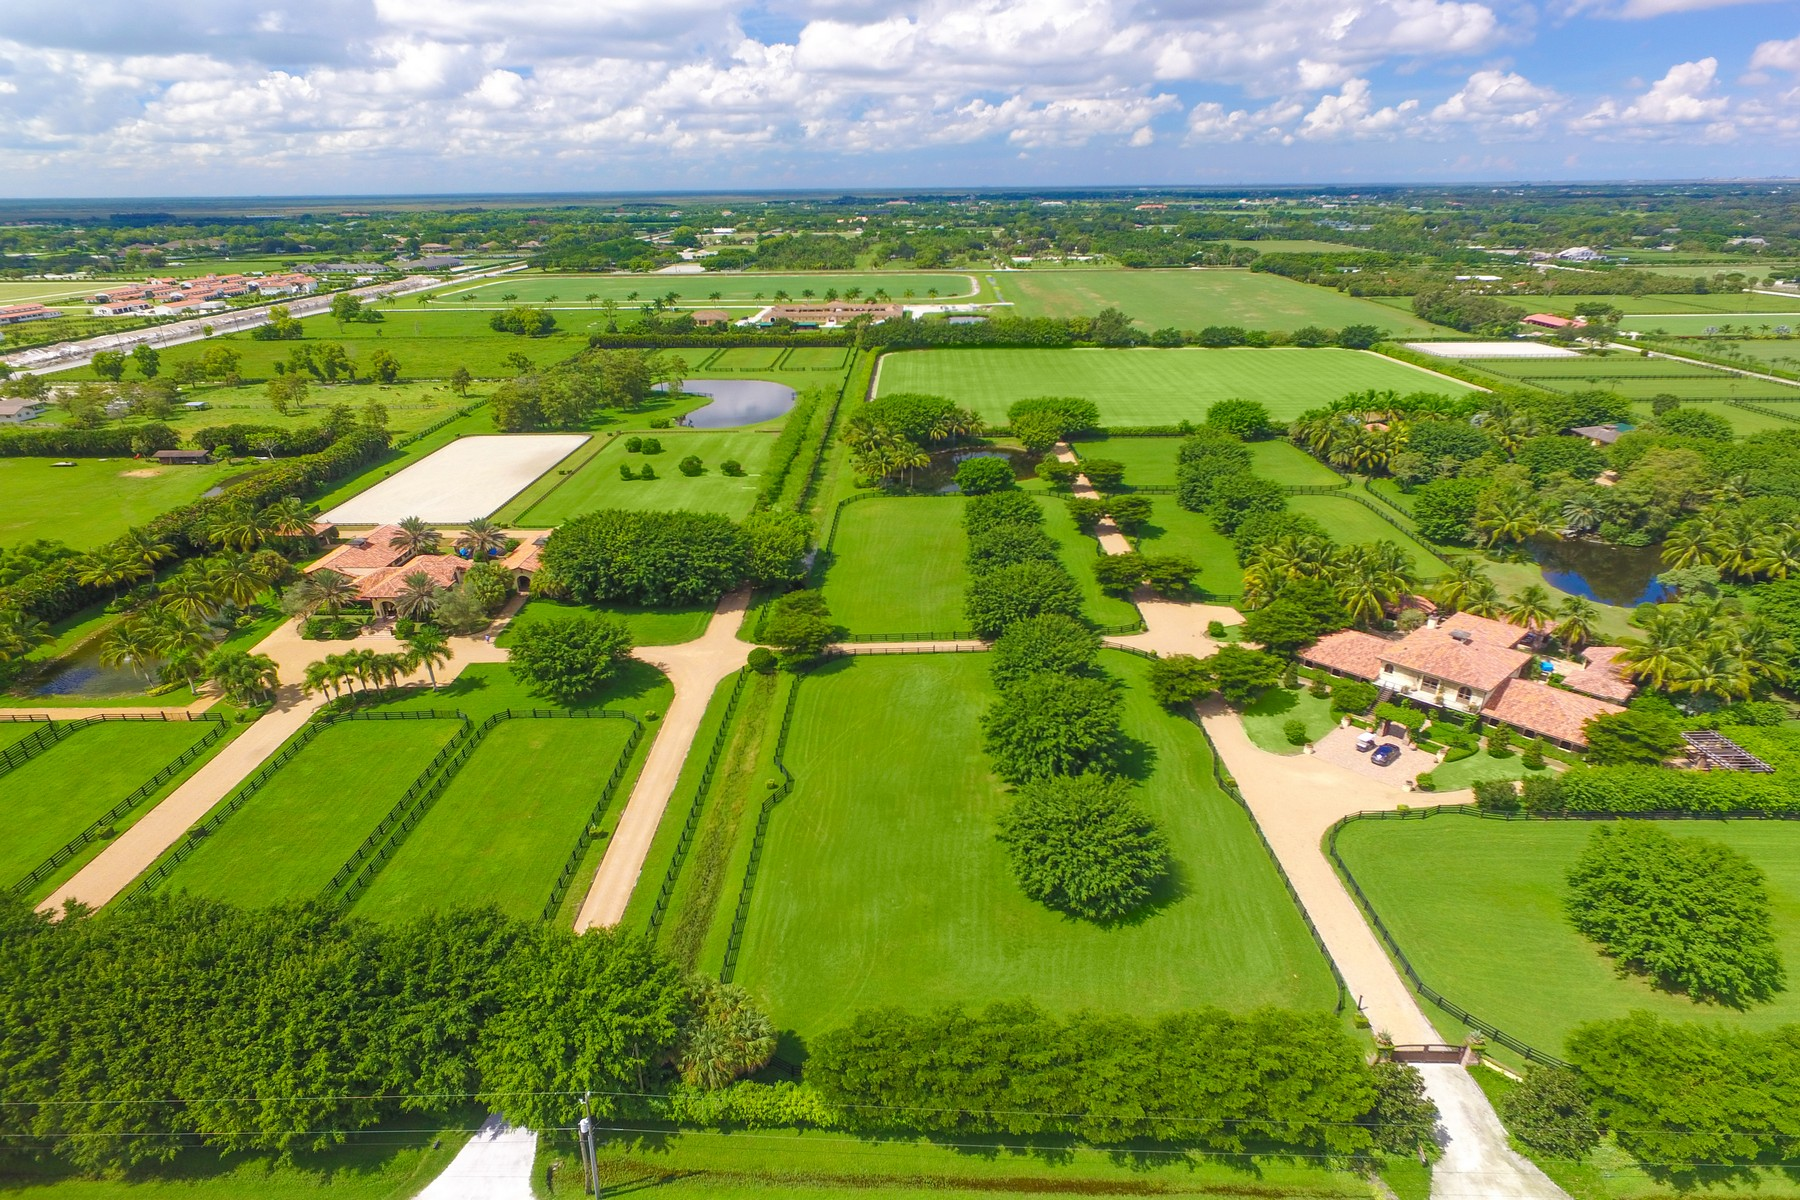 Maison unifamiliale pour l Vente à 4715 125th Ave South Wellington, Florida 33414 États-Unis